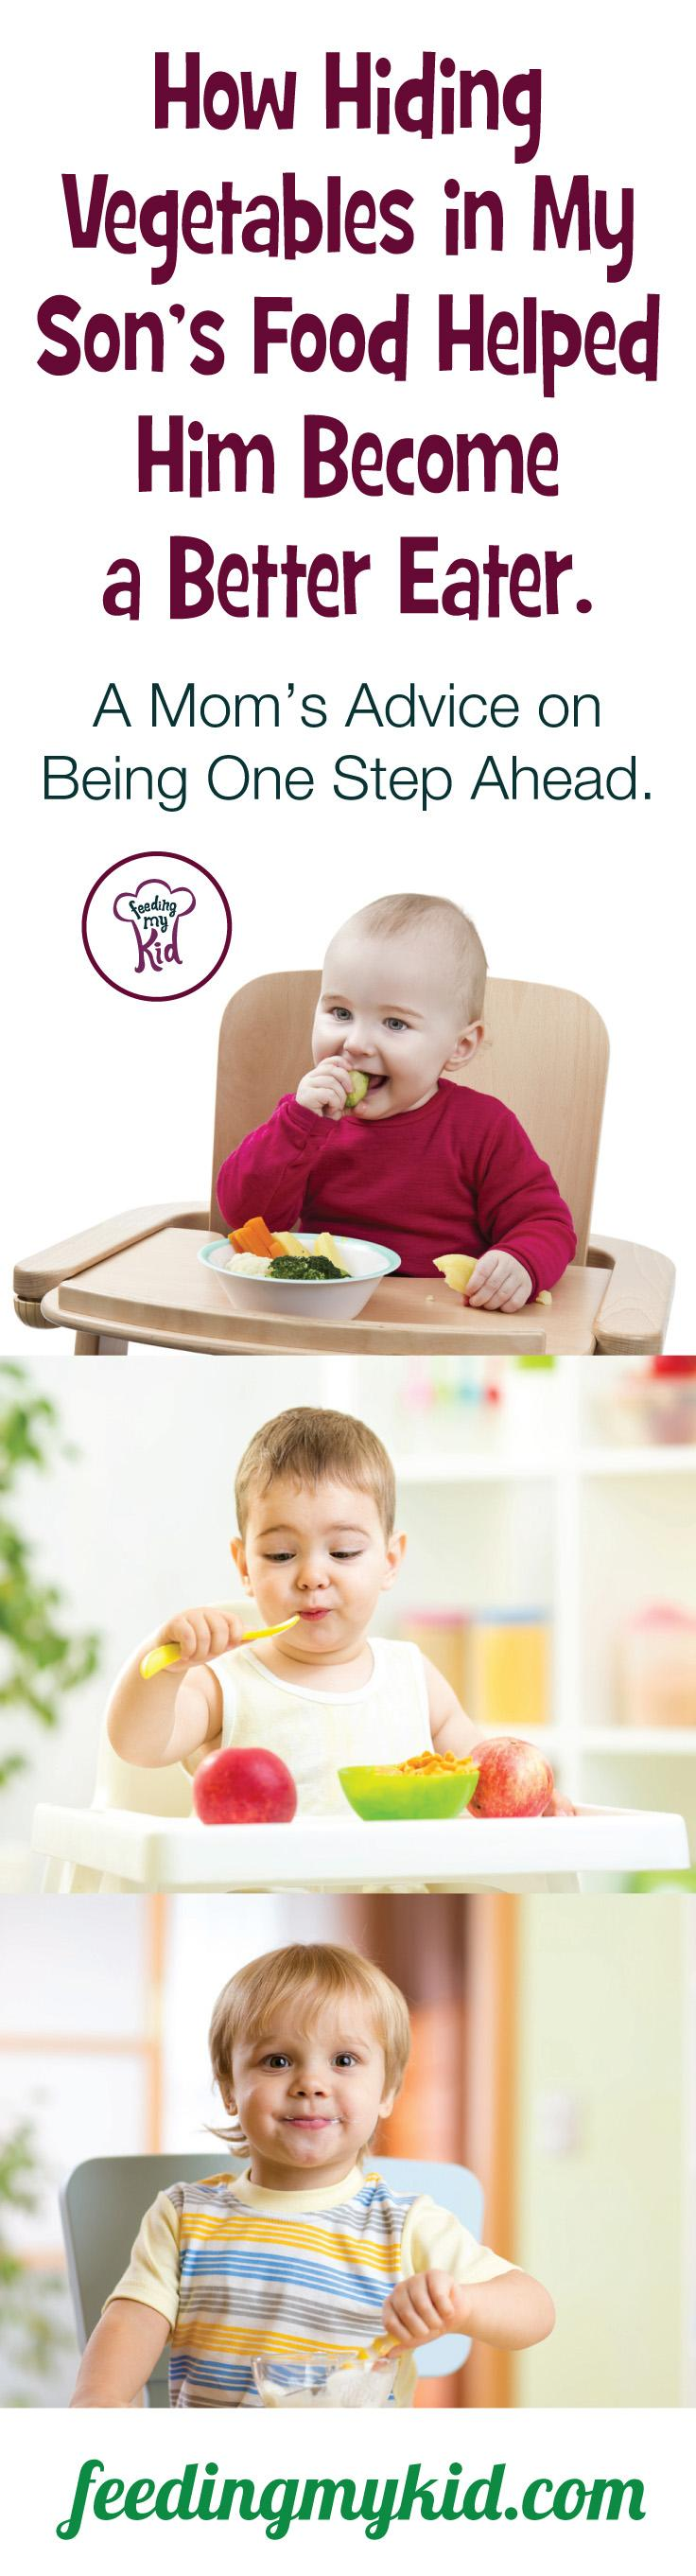 This is a must pin! Is your toddler not eating his veggies? Learn how to get kids to eat vegetables by hiding them in plain sight! Stop picky eating in its tracks! Feeding My Kid is a website for parents, filled with all the information you need about how to raise your kids, from healthy tips to nutritious recipes. #parenting #hidingveggies #getingkidstoeatveggies